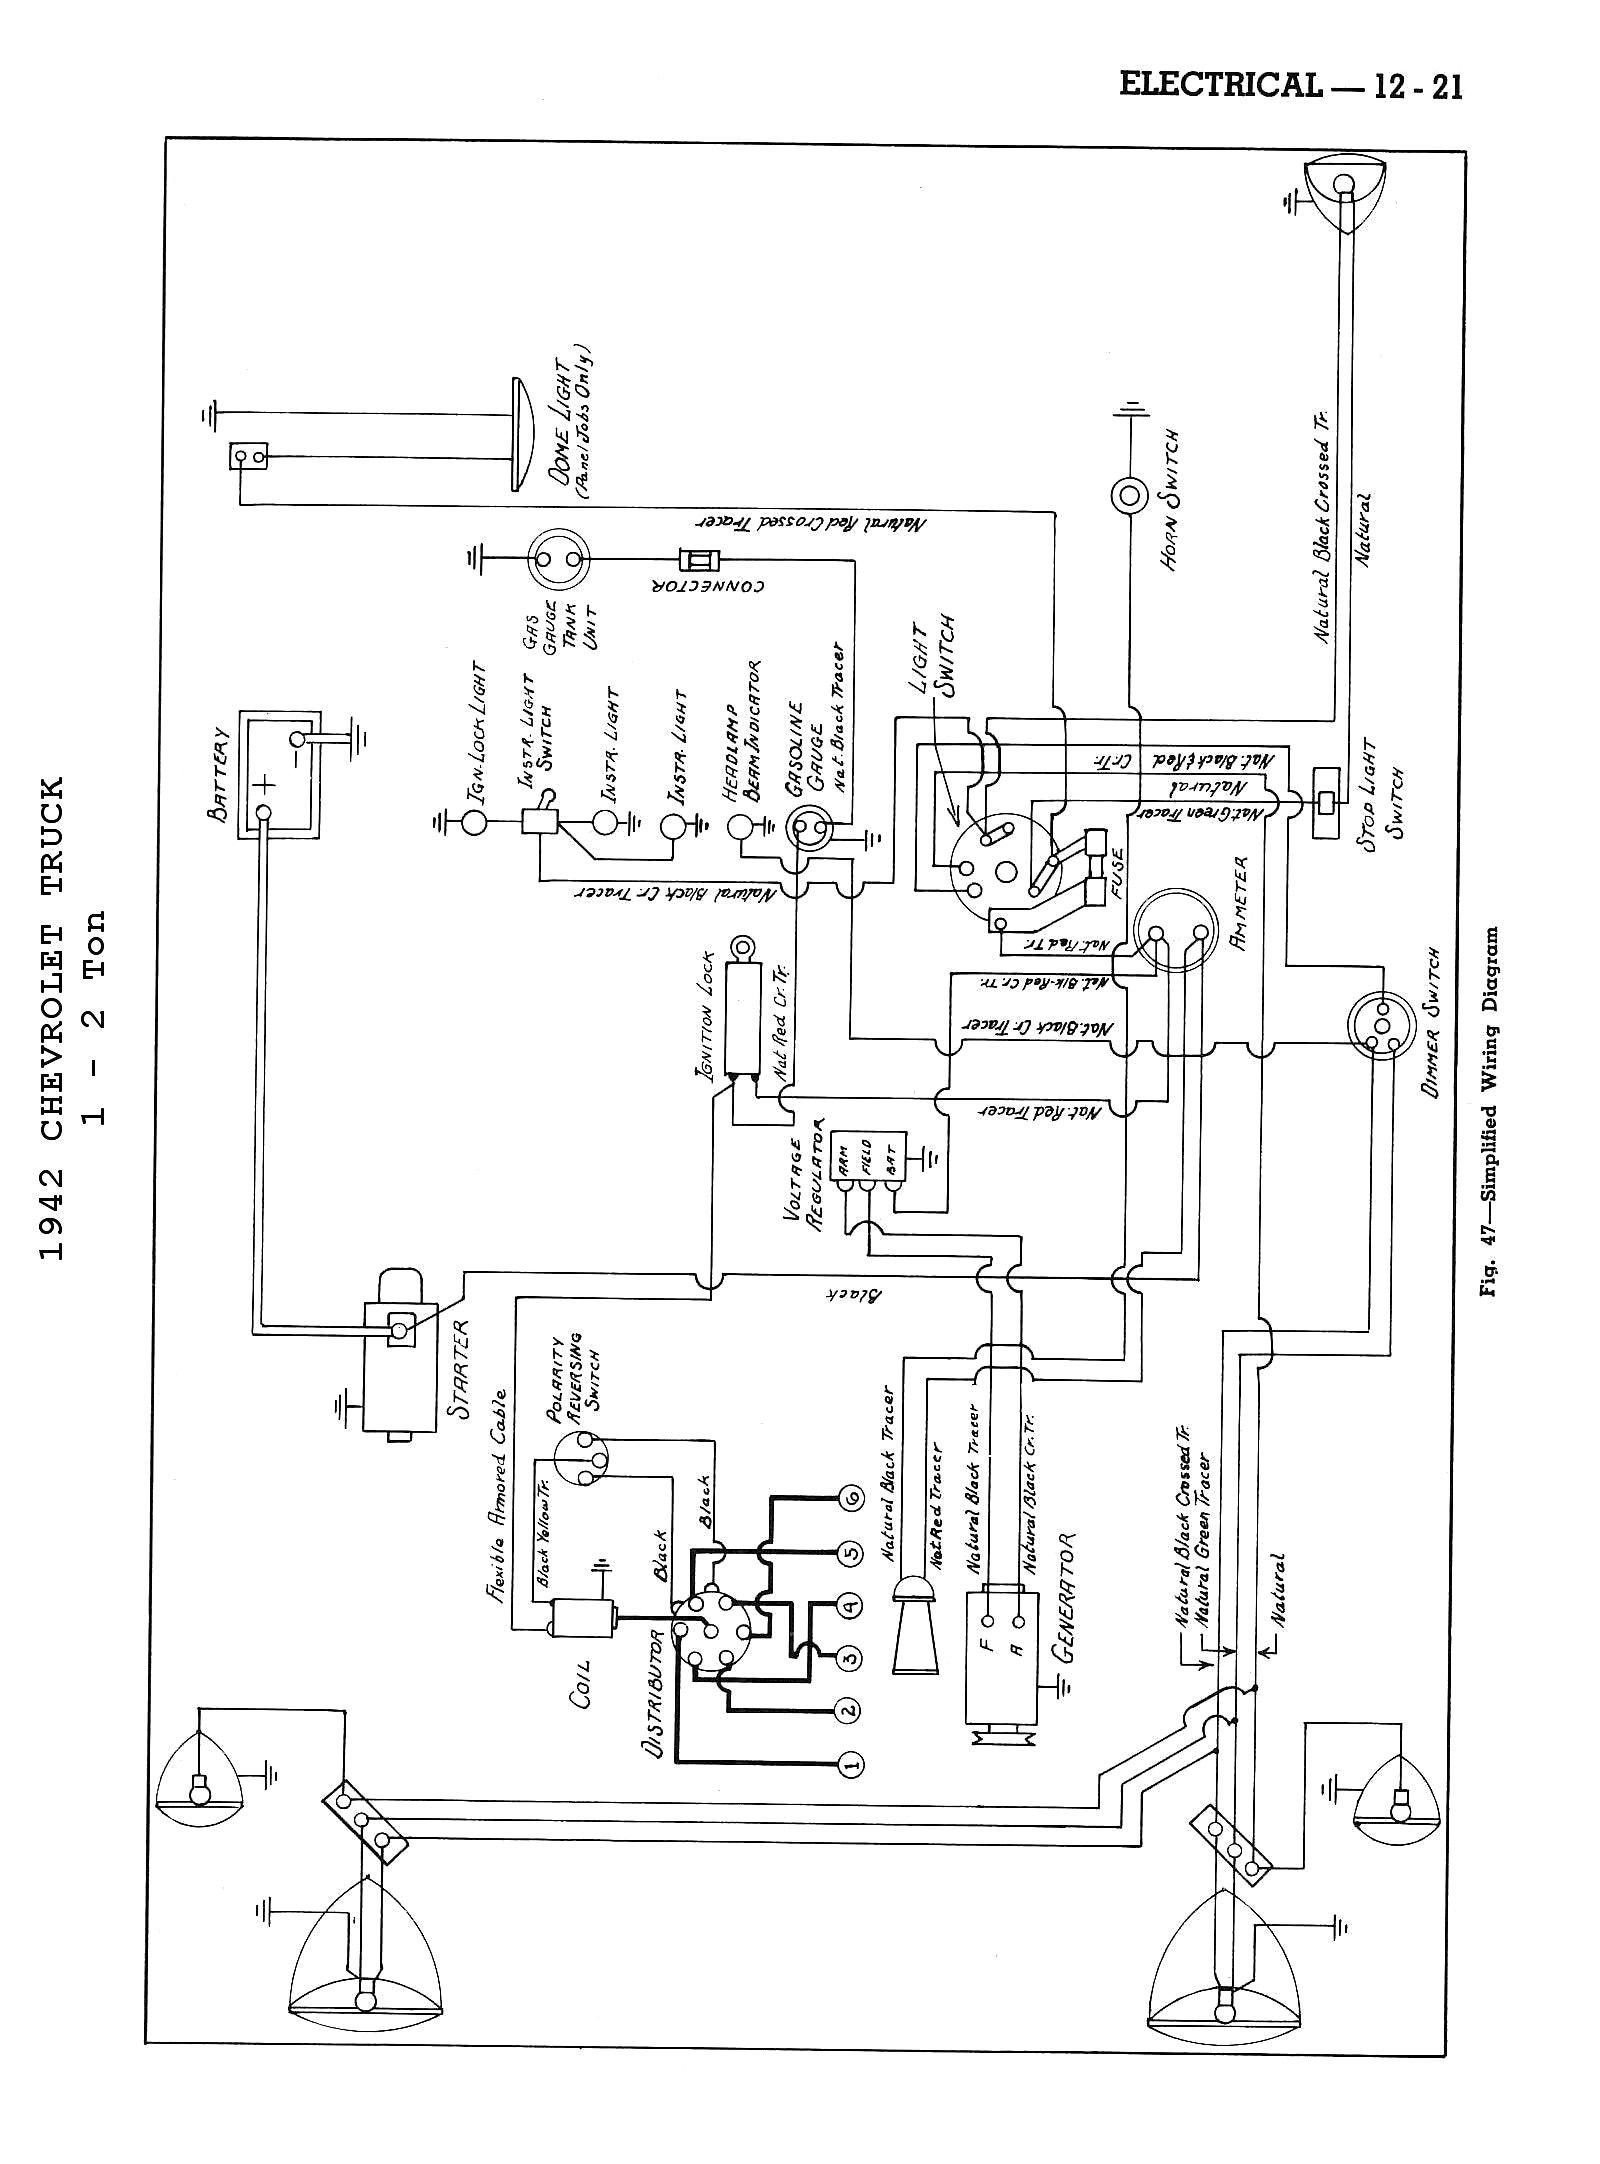 Jeep Gladiator Wiring Diagram